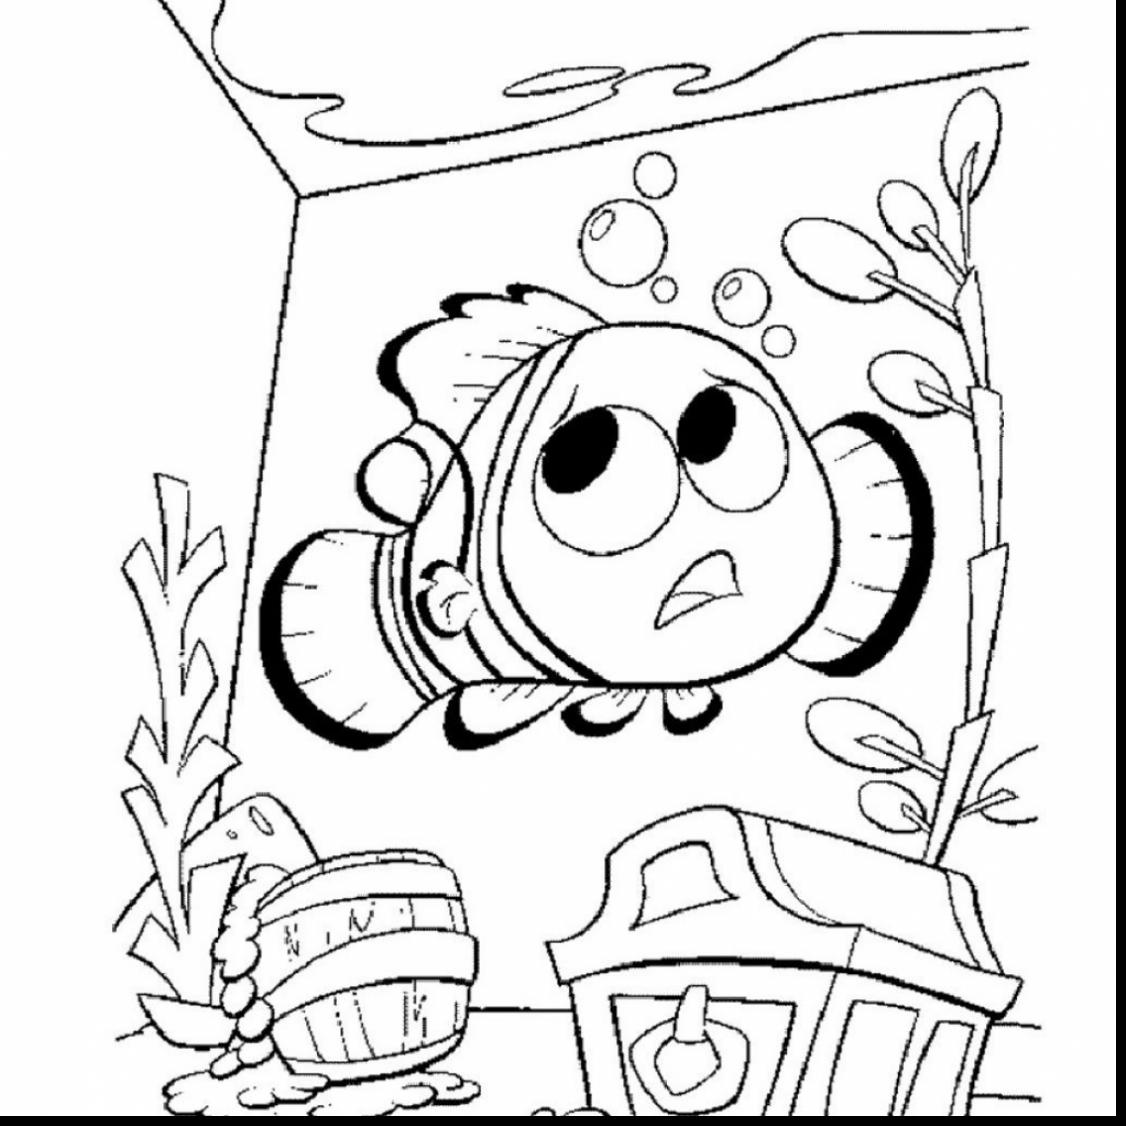 Super Bowl 51 Coloring Pages At Getcolorings